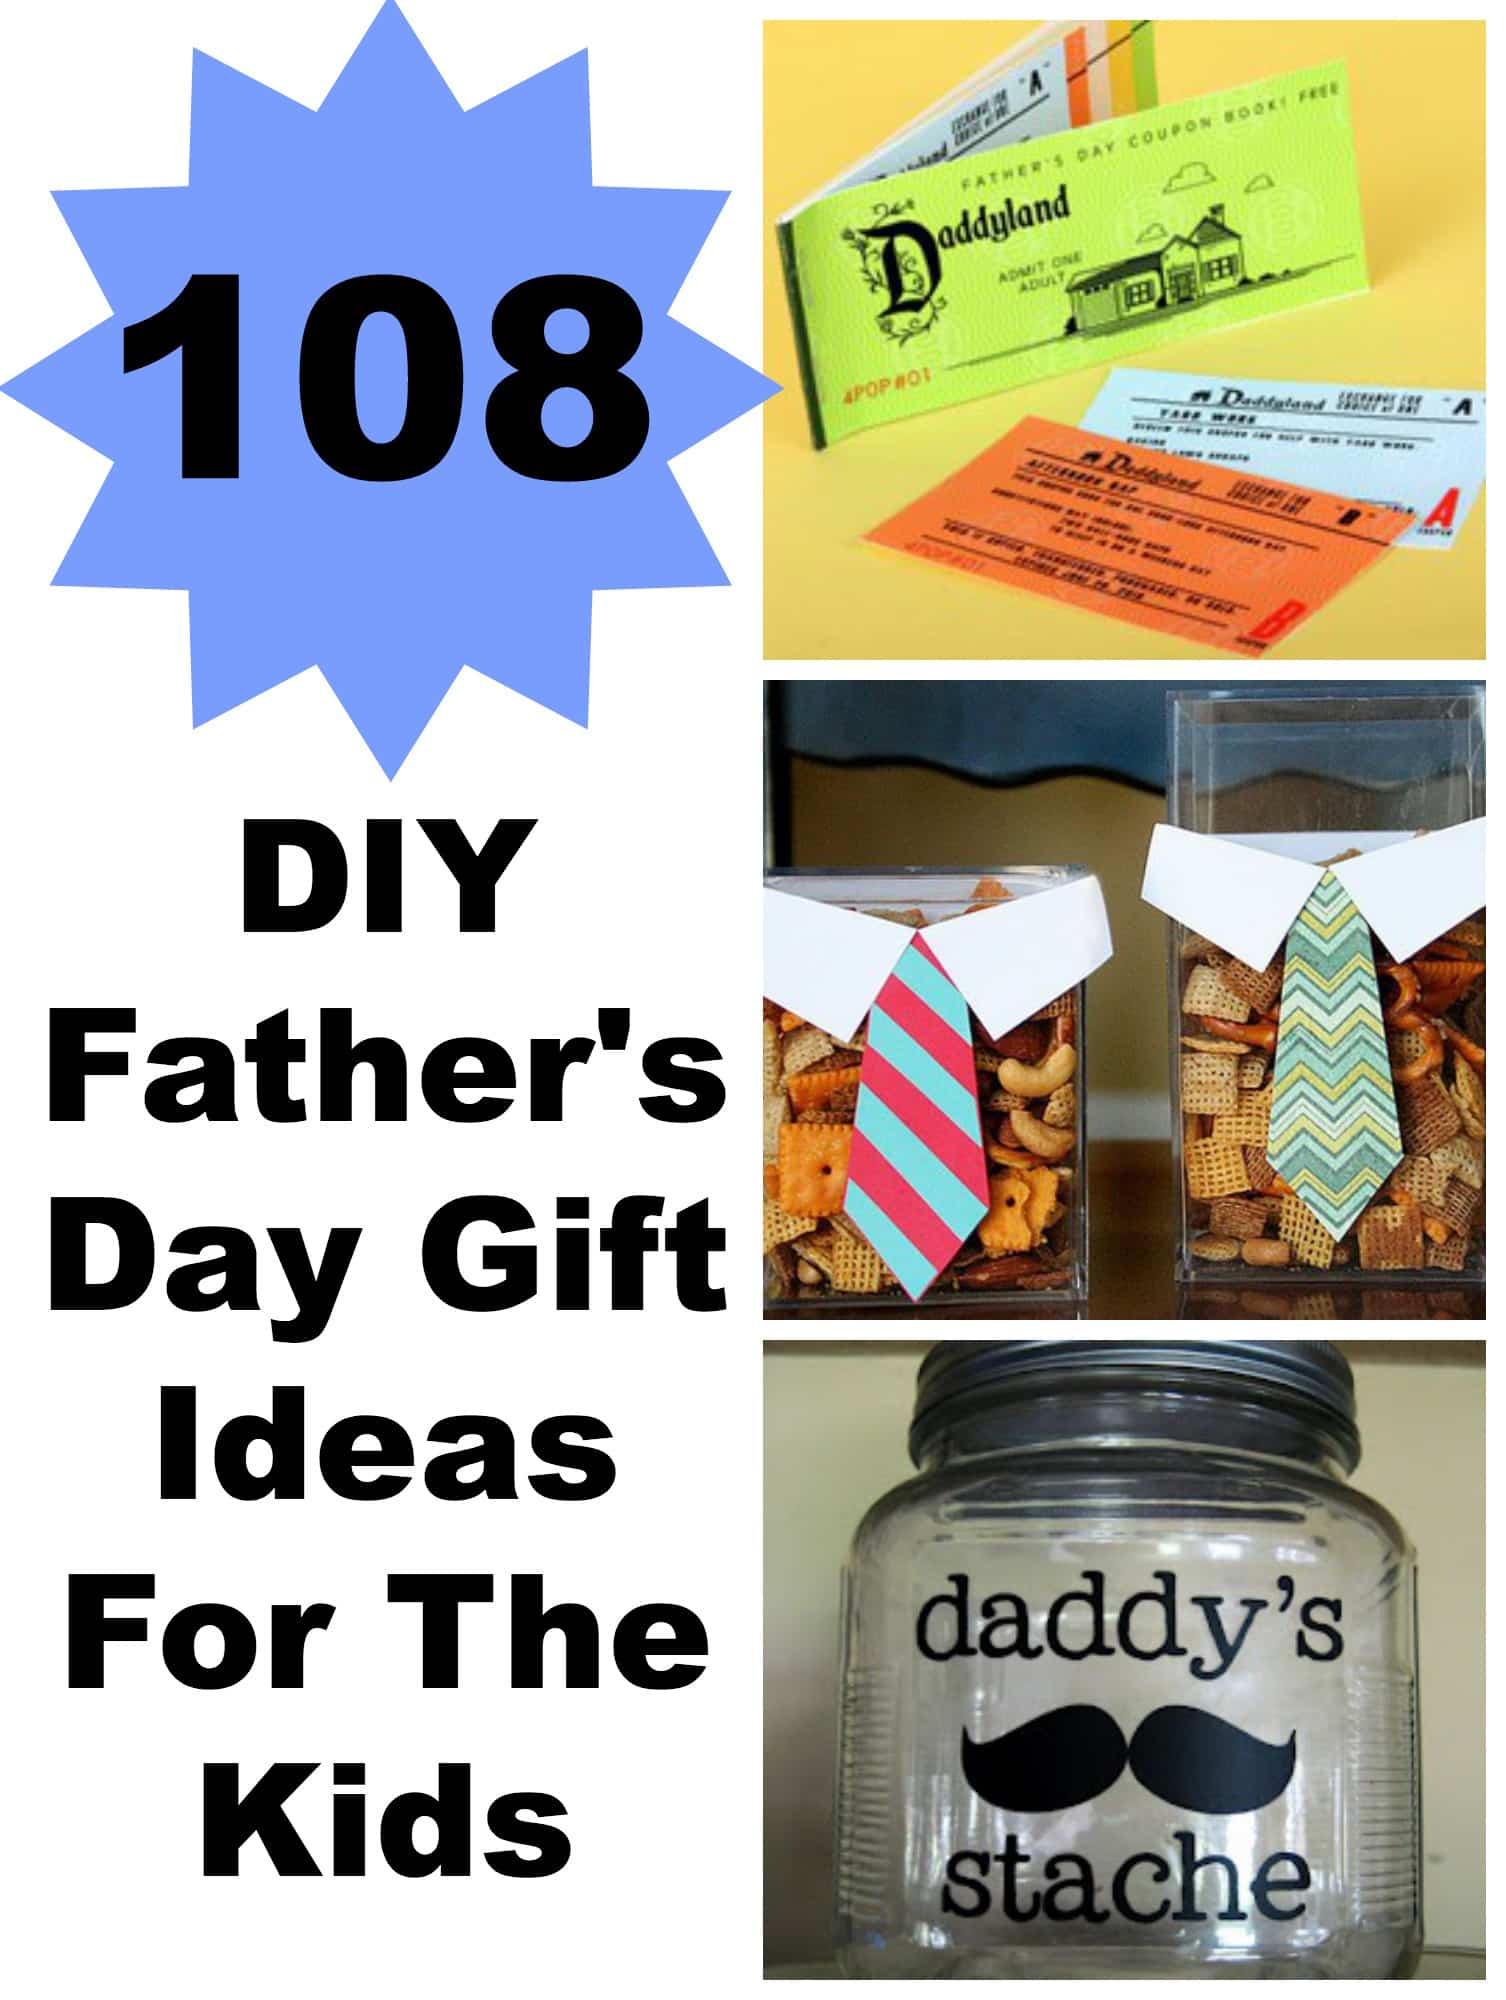 108 DIY Father's Day Gift Ideas For The Kids - Lady and the Blog